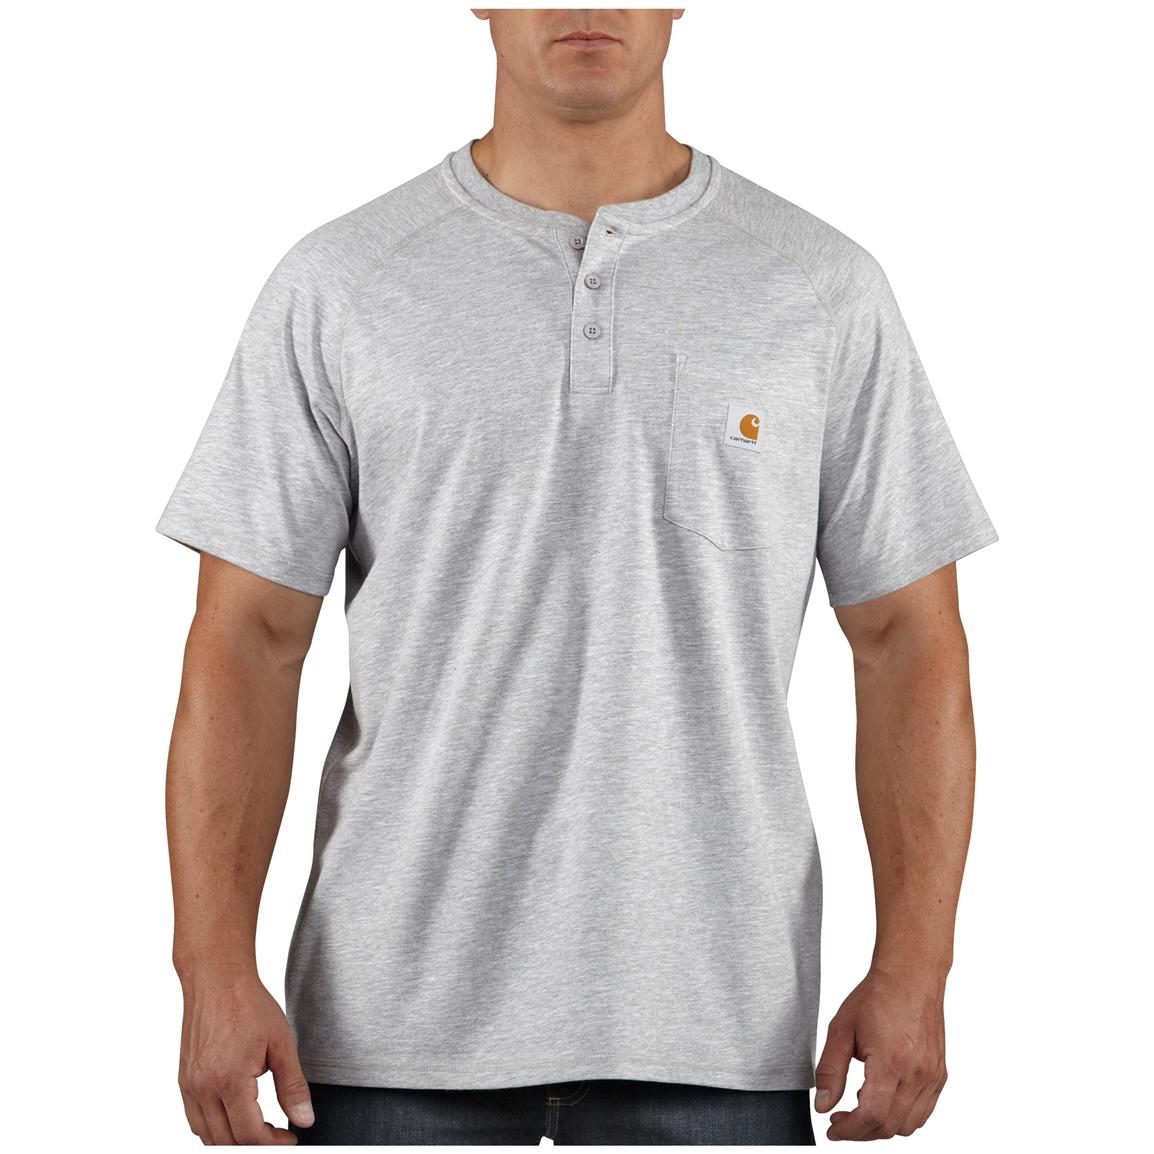 Short Sleeve Shirts: Free Shipping on orders over $45 at metrdisk.cf - Your Online Tops Store! Burberry Women's Black Cotton Polo Shirt. Free Shipping & Returns with Club O Gold* MOA Collection Women's Short Sleeve Shirt. Free Shipping & Returns with Club O Gold* 7 .